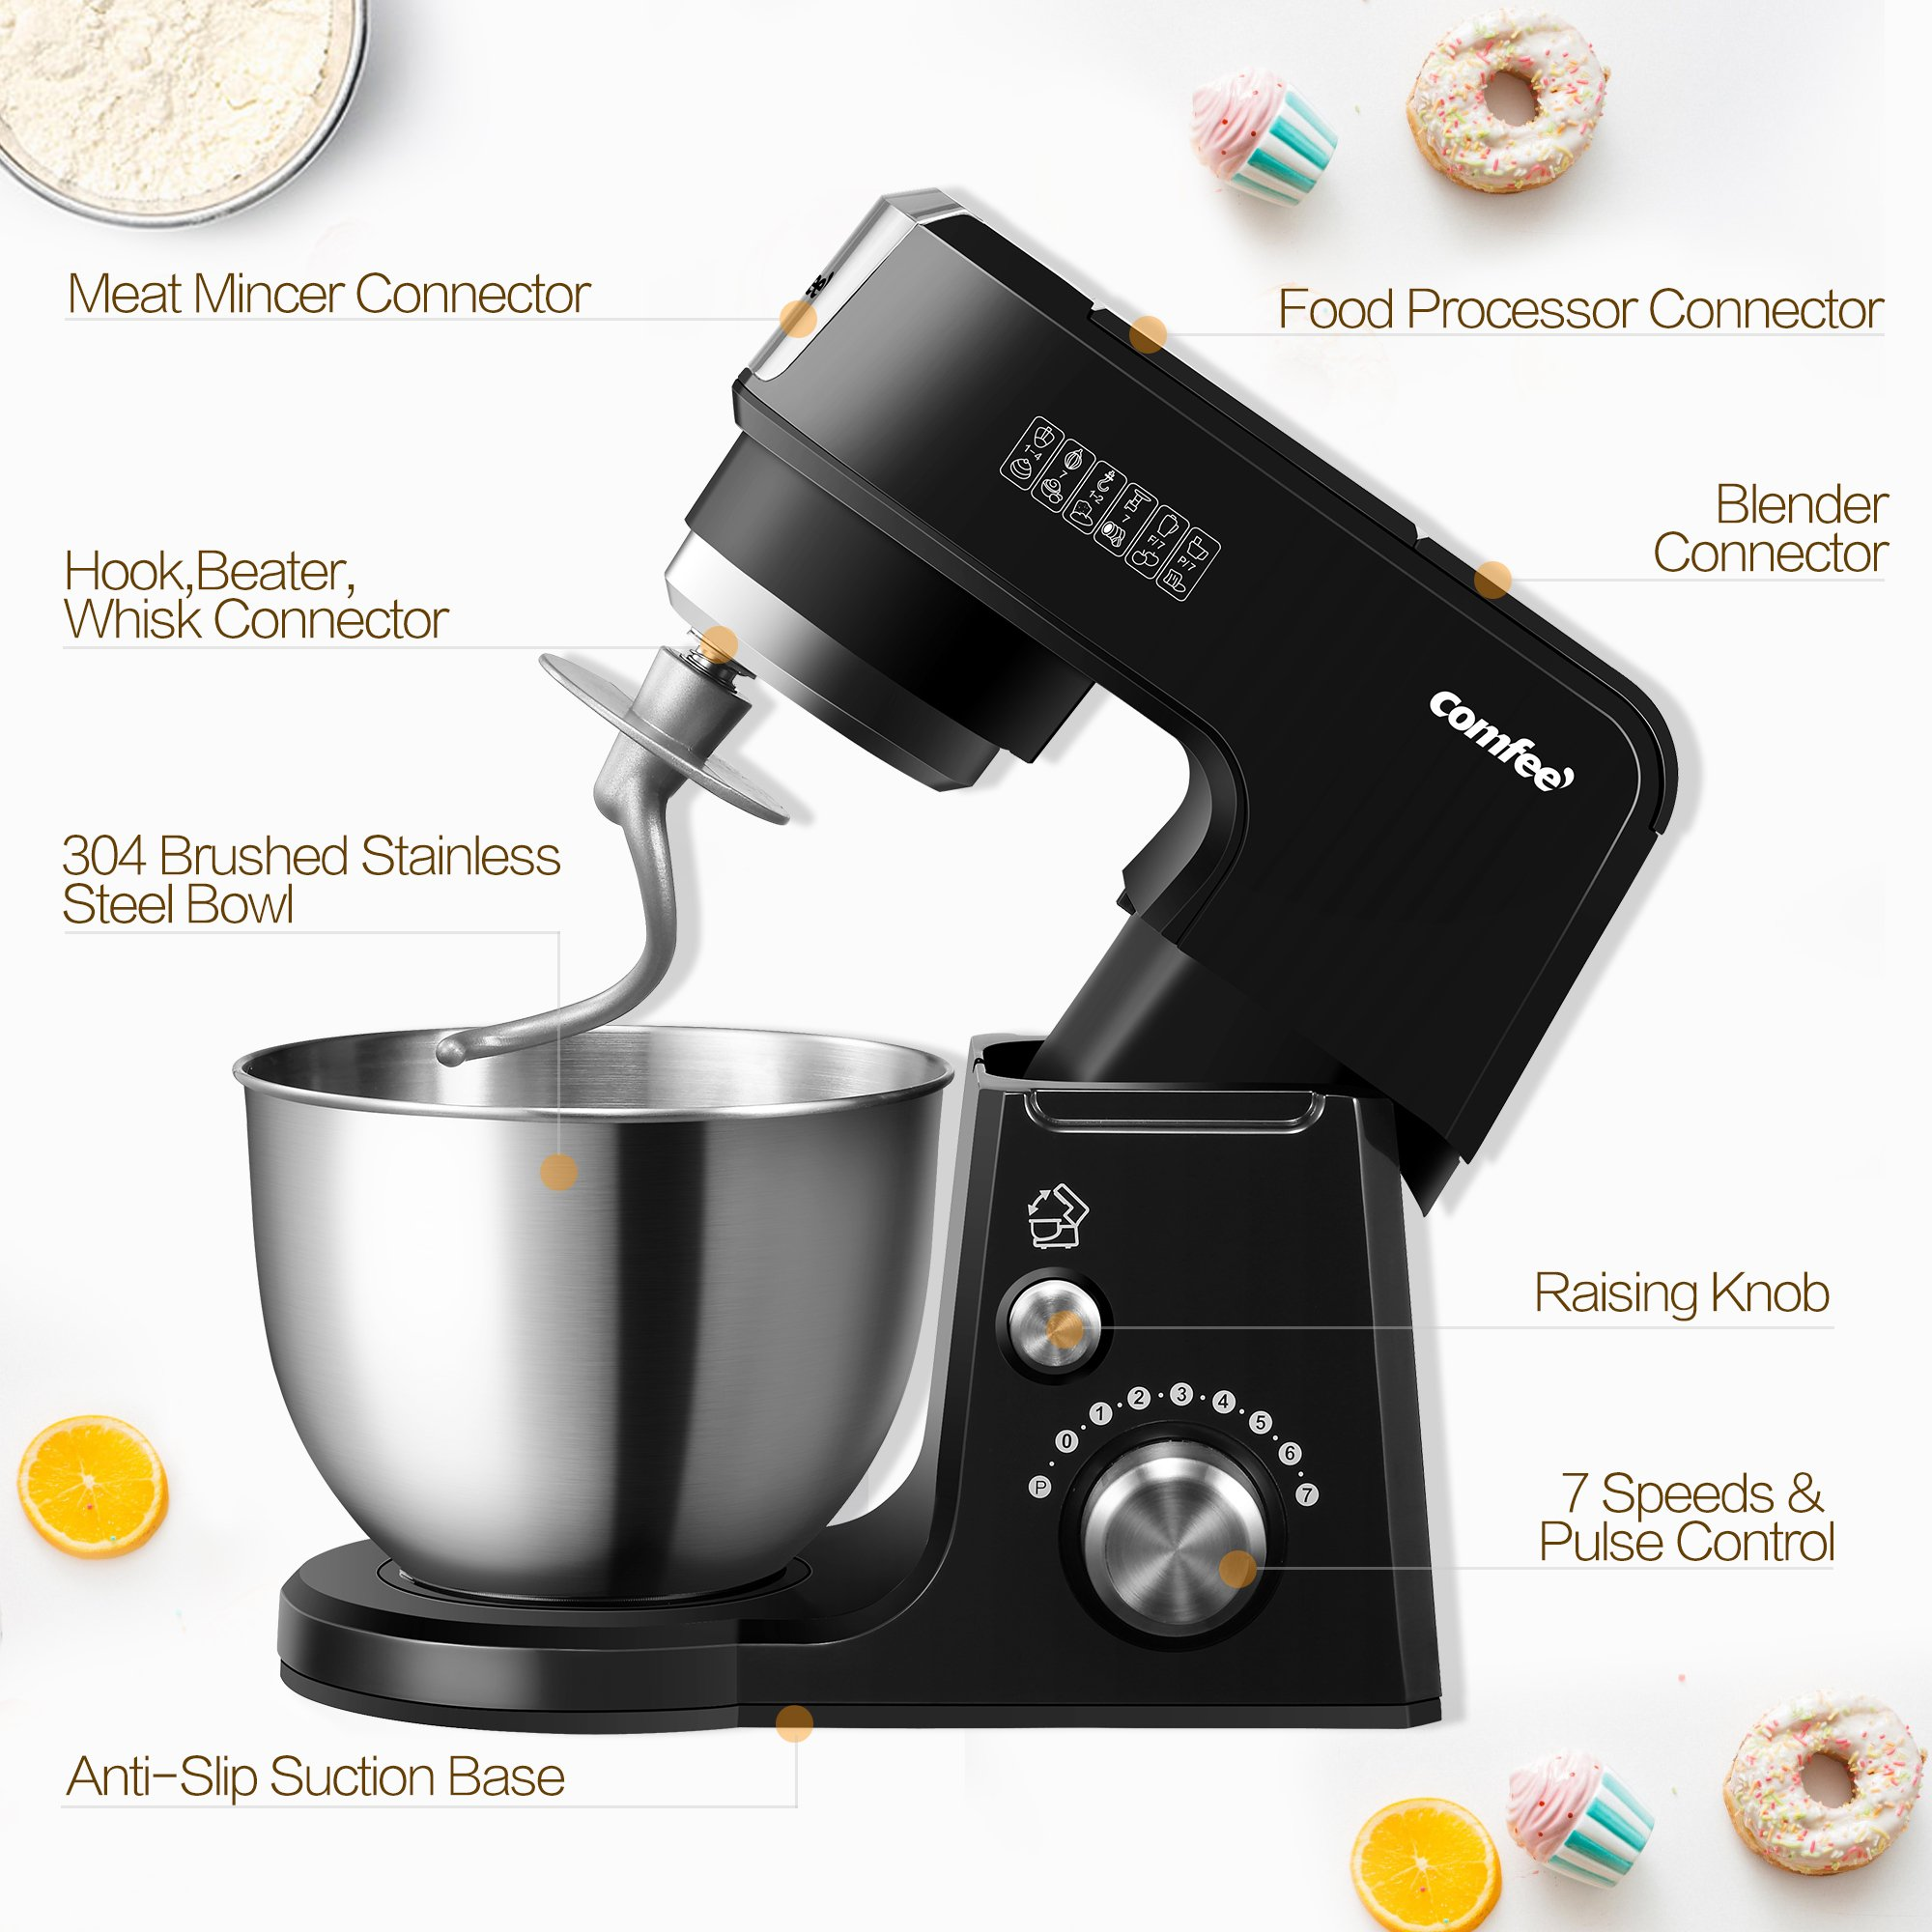 Comfee 2.6Qt Die Cast 7-in-1 Multi Function Tilt-Head Stand Mixer with SUS Mixing Bowl, Whisk, Hook, Beater, Splash Guard.4 Outlets, 7 Speeds & Pulse, 15 Minutes Timer Planetary Mixer (Black) by Comfee (Image #6)